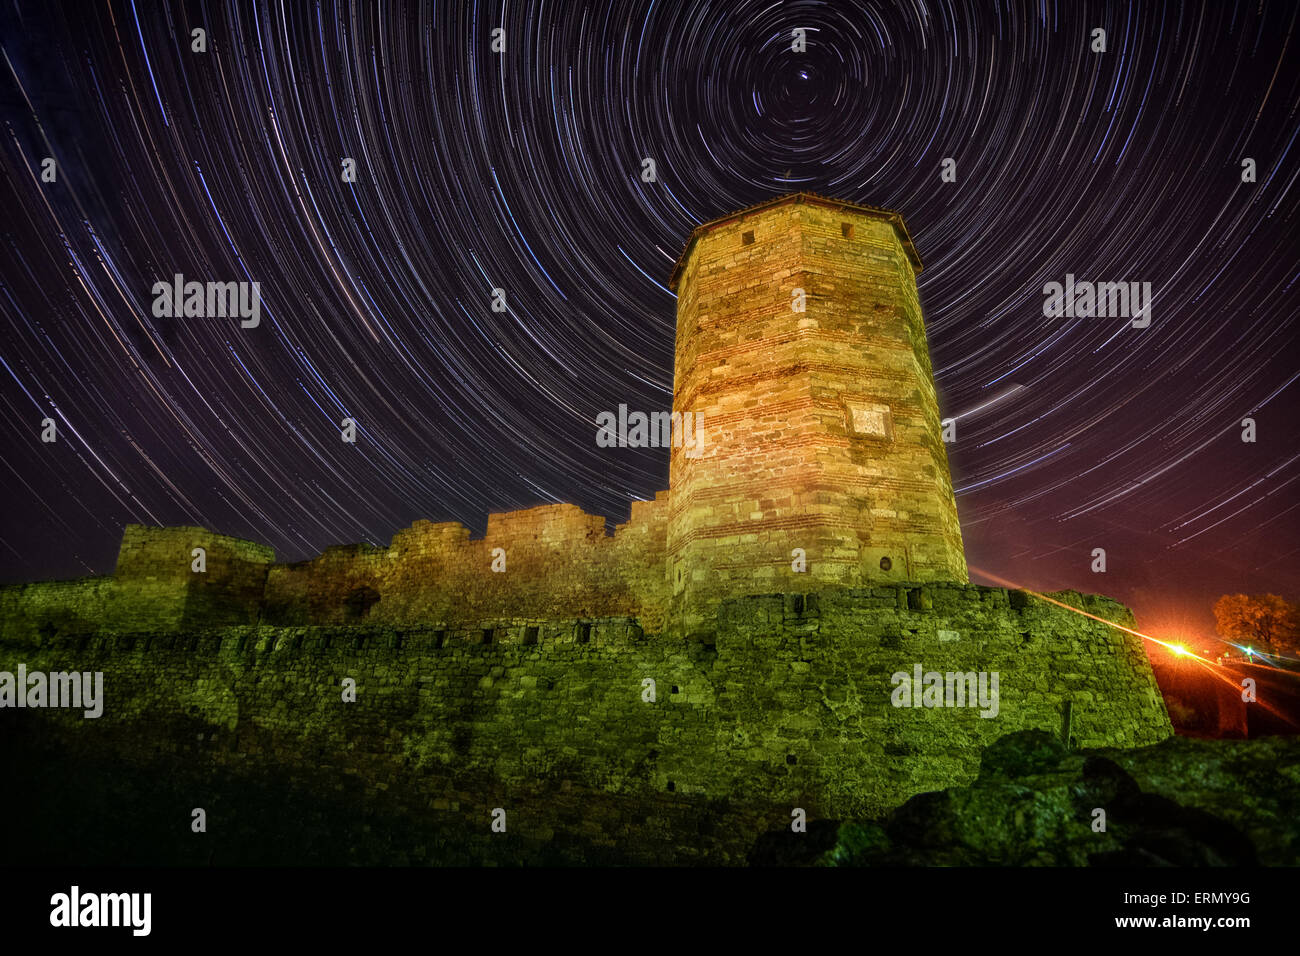 Old stone tower on starry night skyes background   lighthouse - Stock Image